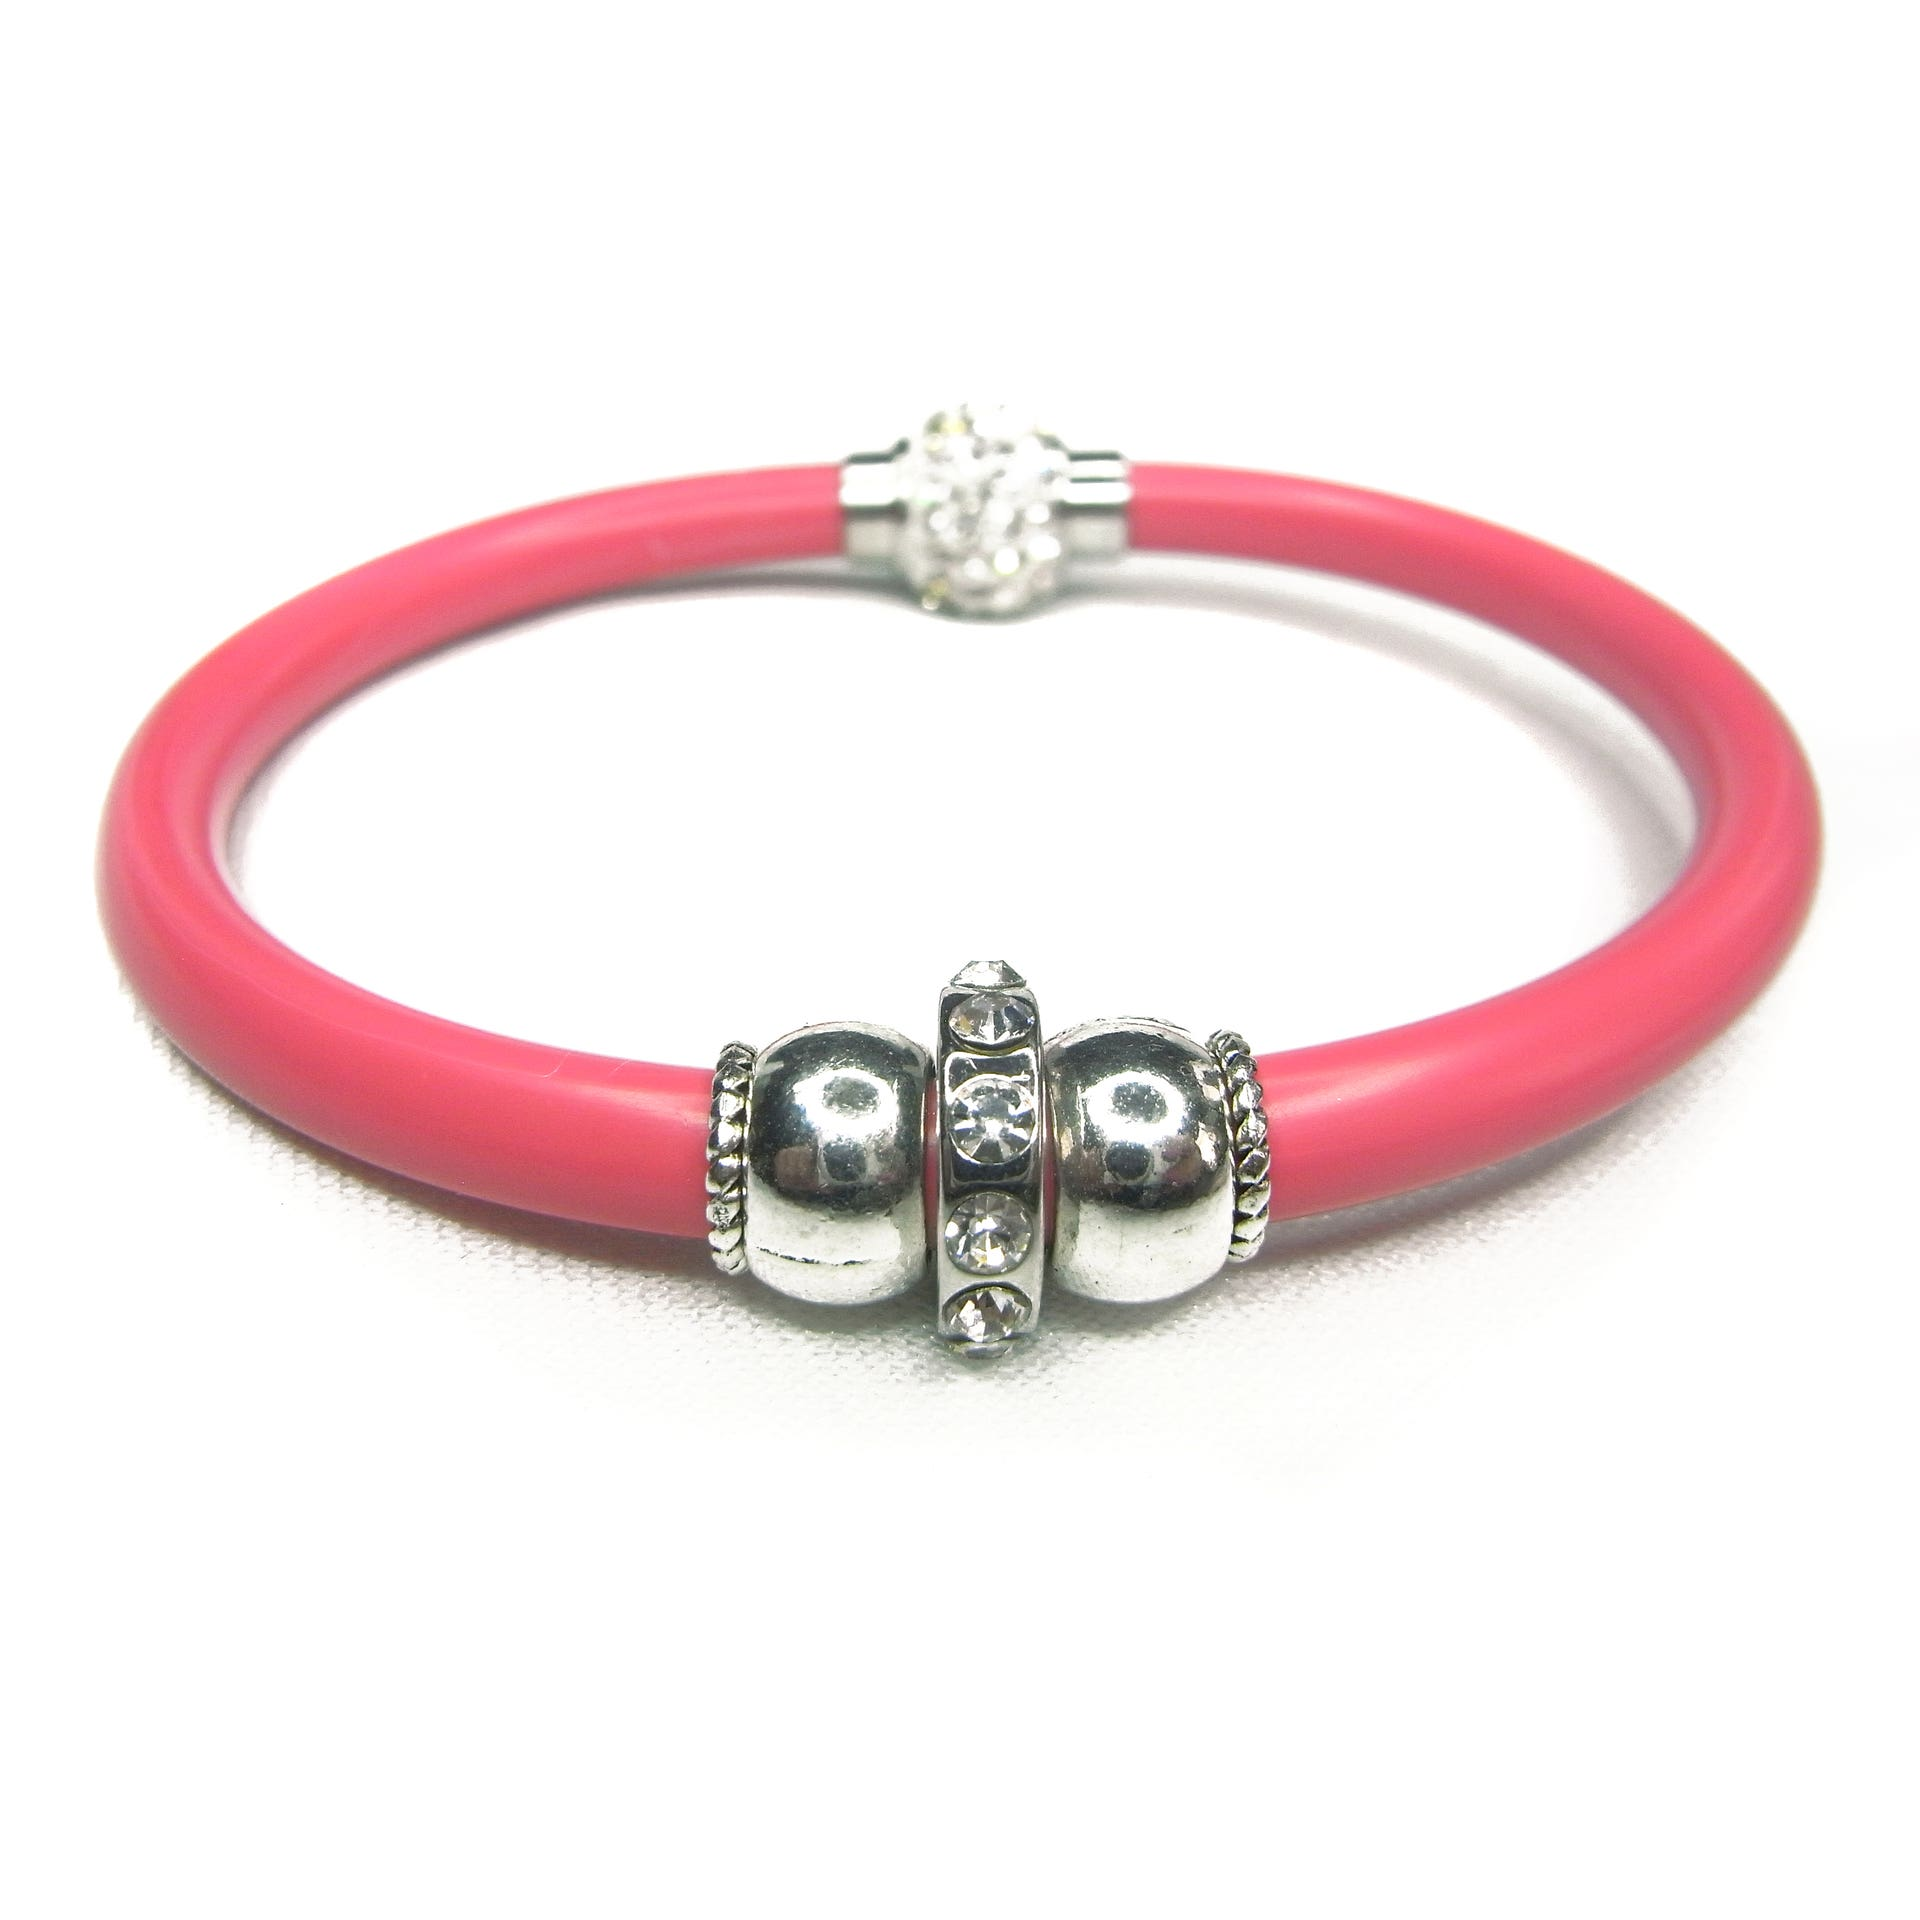 Pinky-red resin bracelet threaded with silver beads.